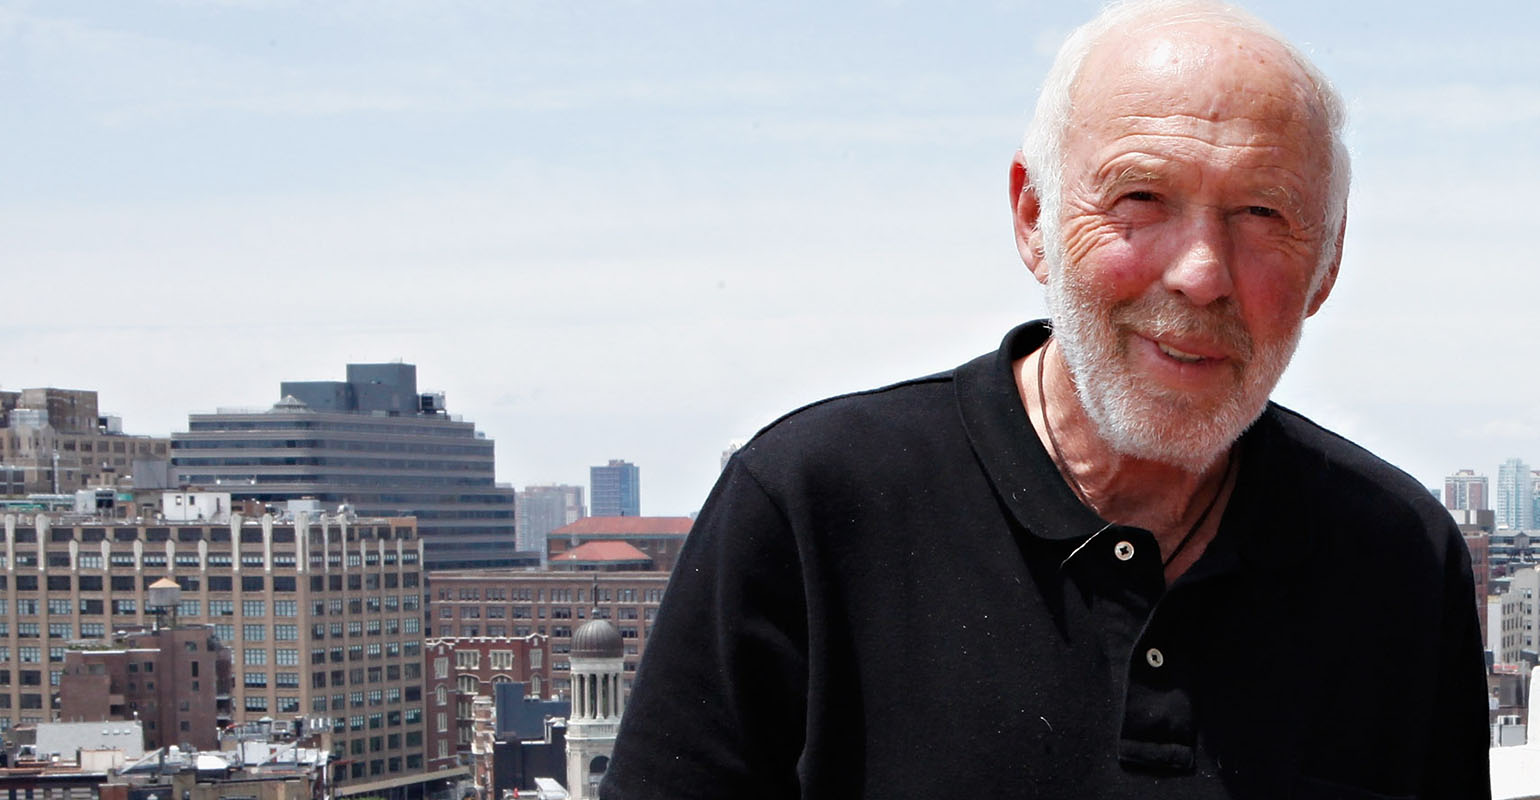 Jim Simons Built the Best Hedge Fund Ever